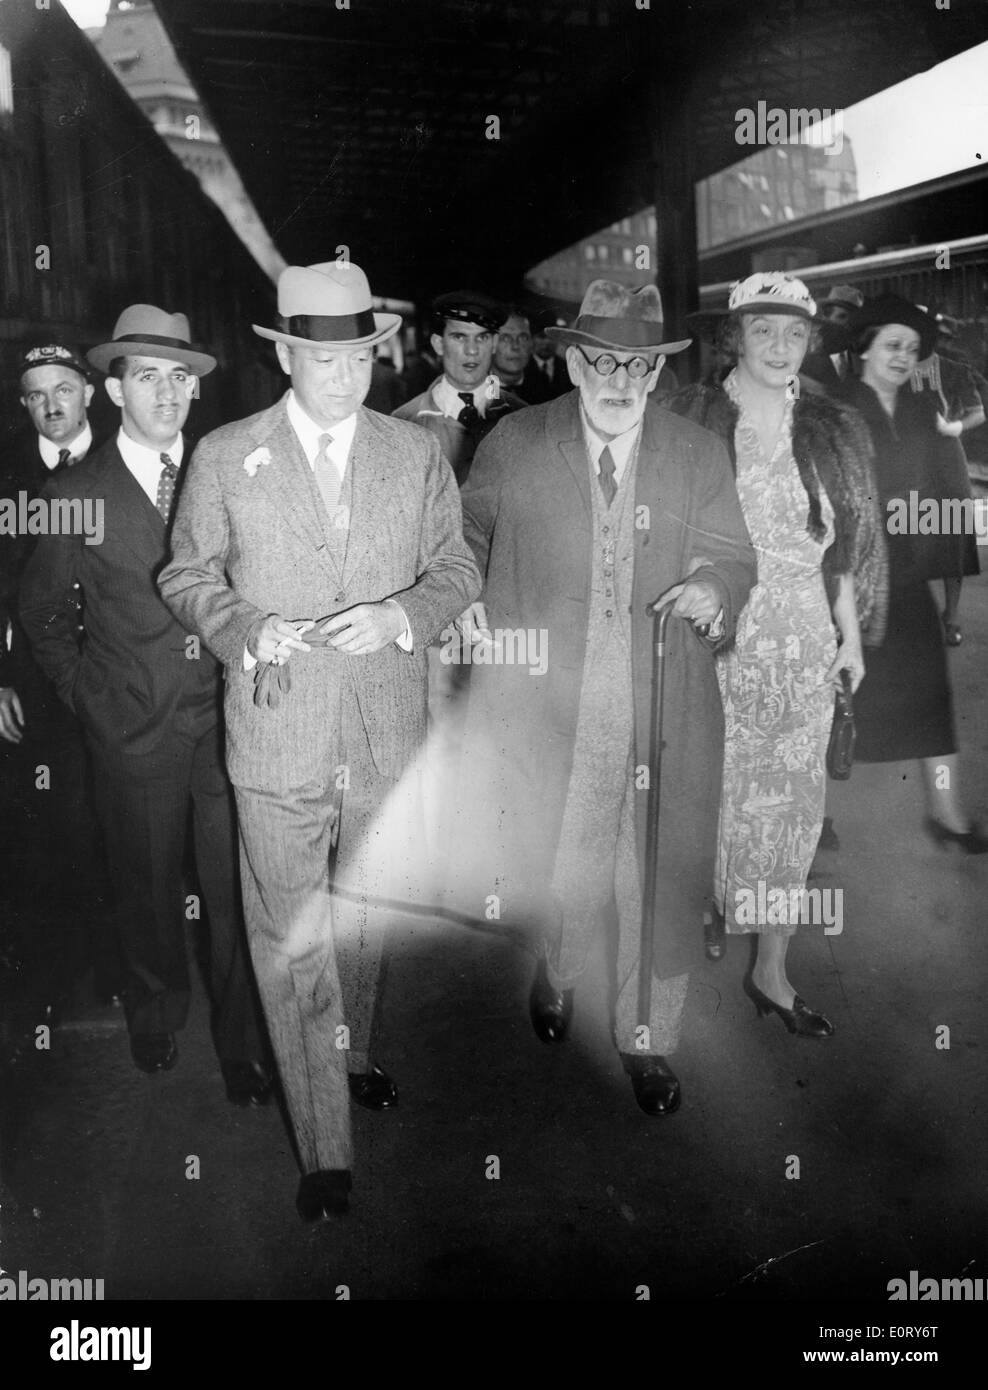 Neurologist Sigmund Freud walks with a colleague - Stock Image